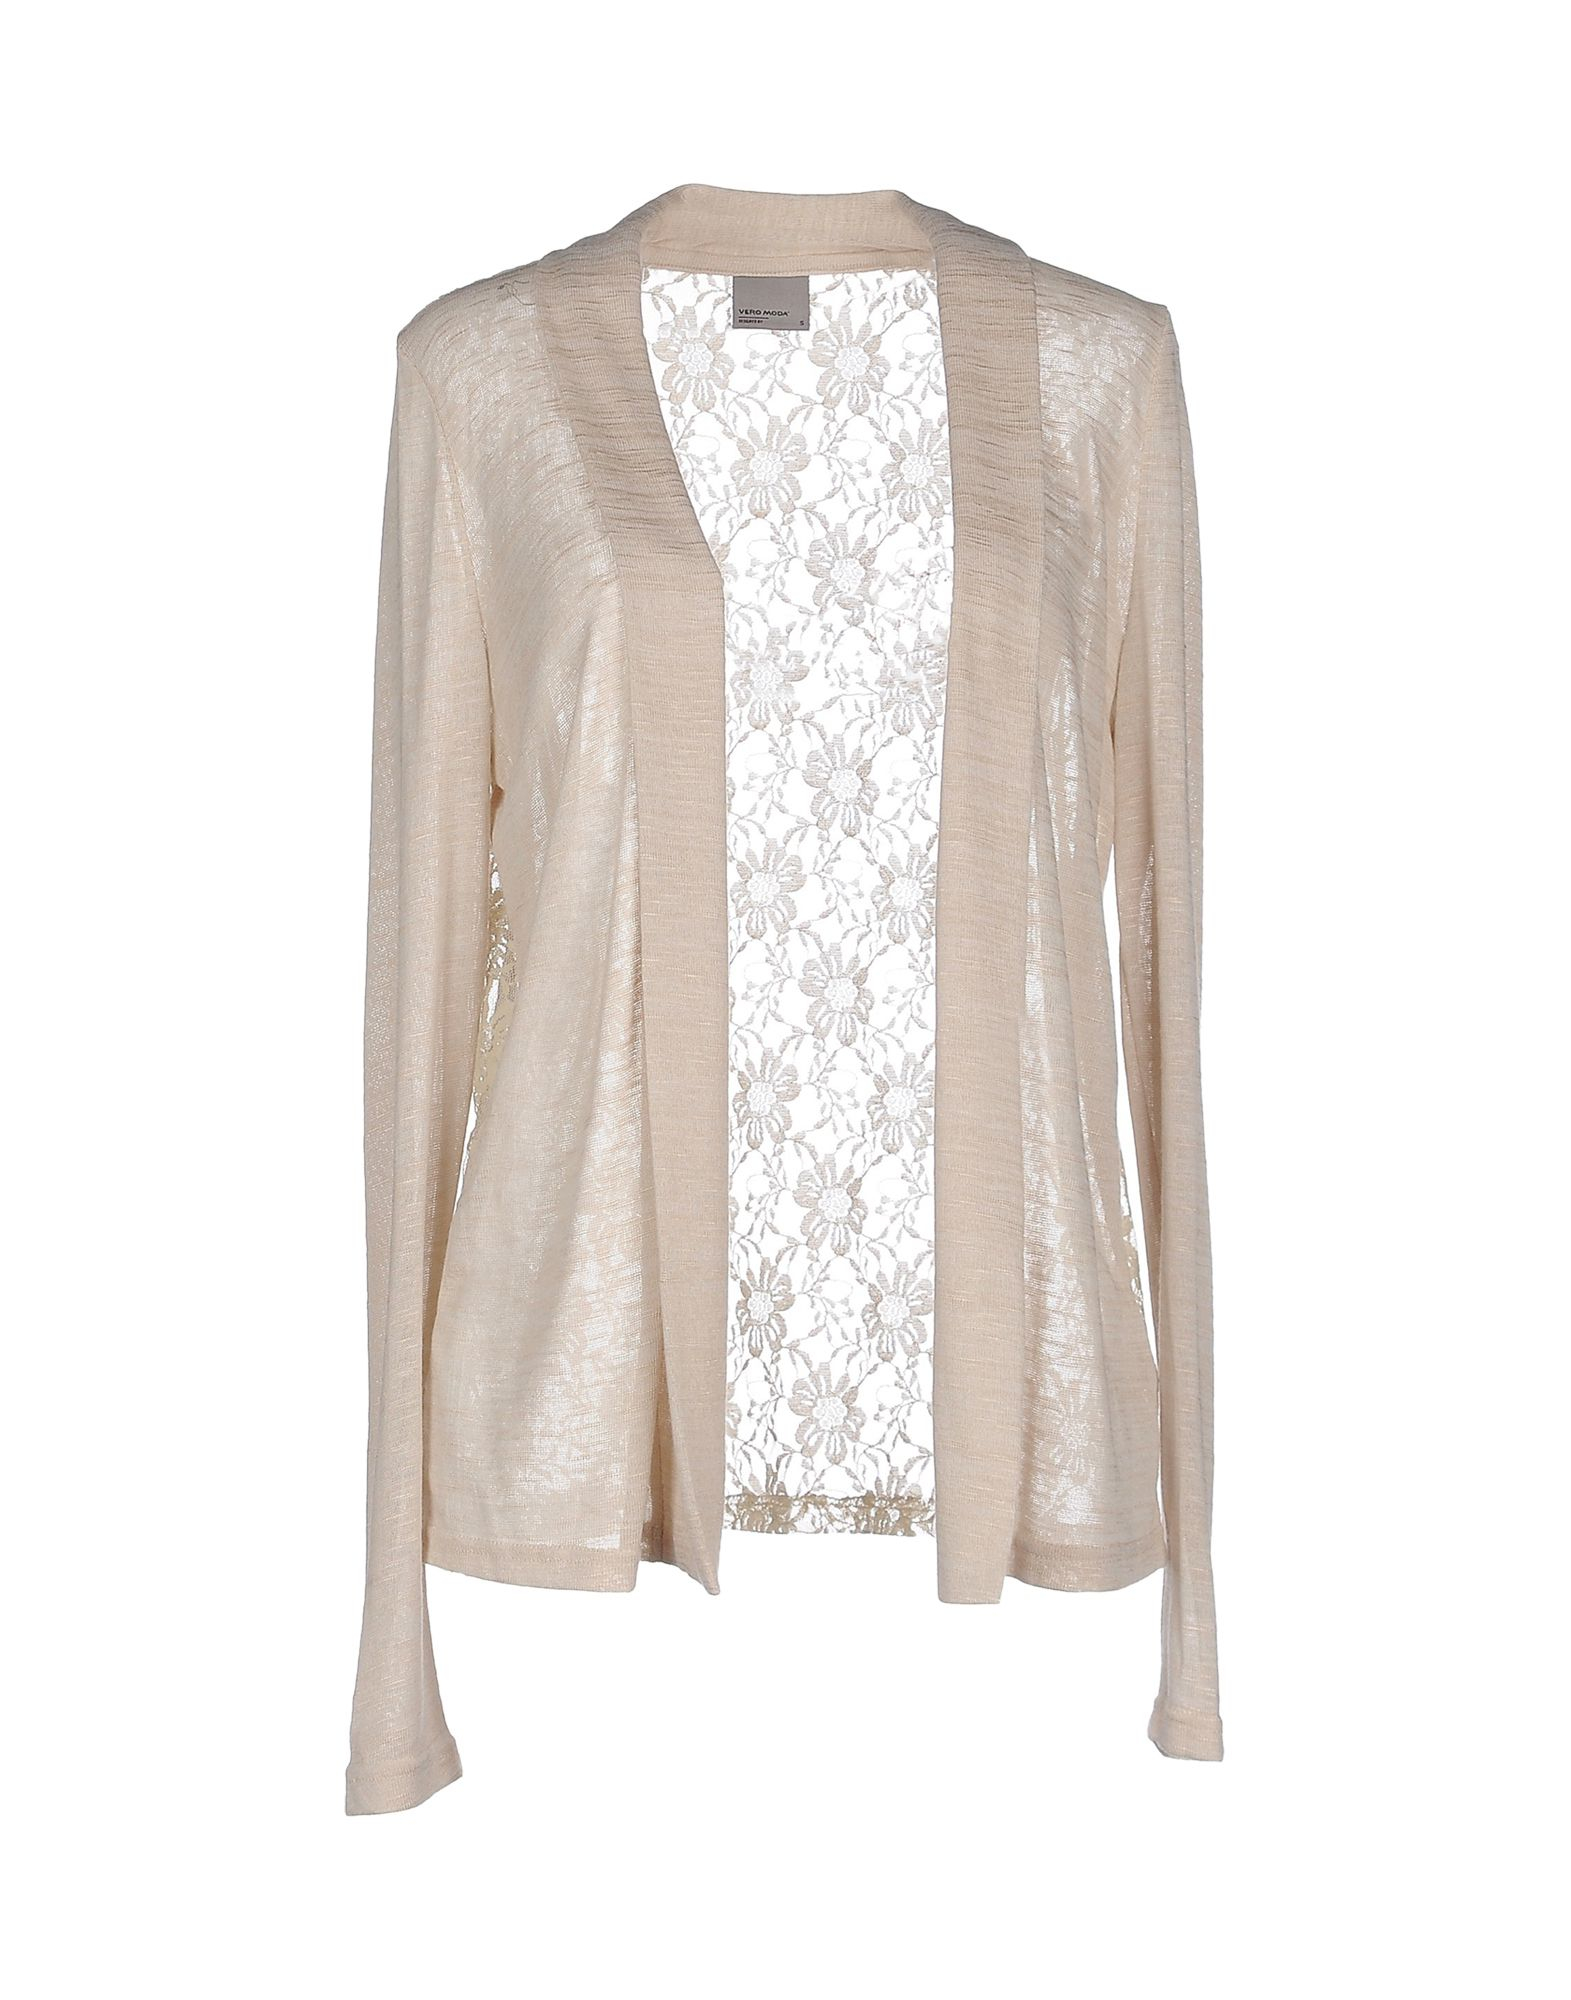 vero moda mantel beige vero moda cardigan in beige lyst vero moda full length jacket in beige. Black Bedroom Furniture Sets. Home Design Ideas